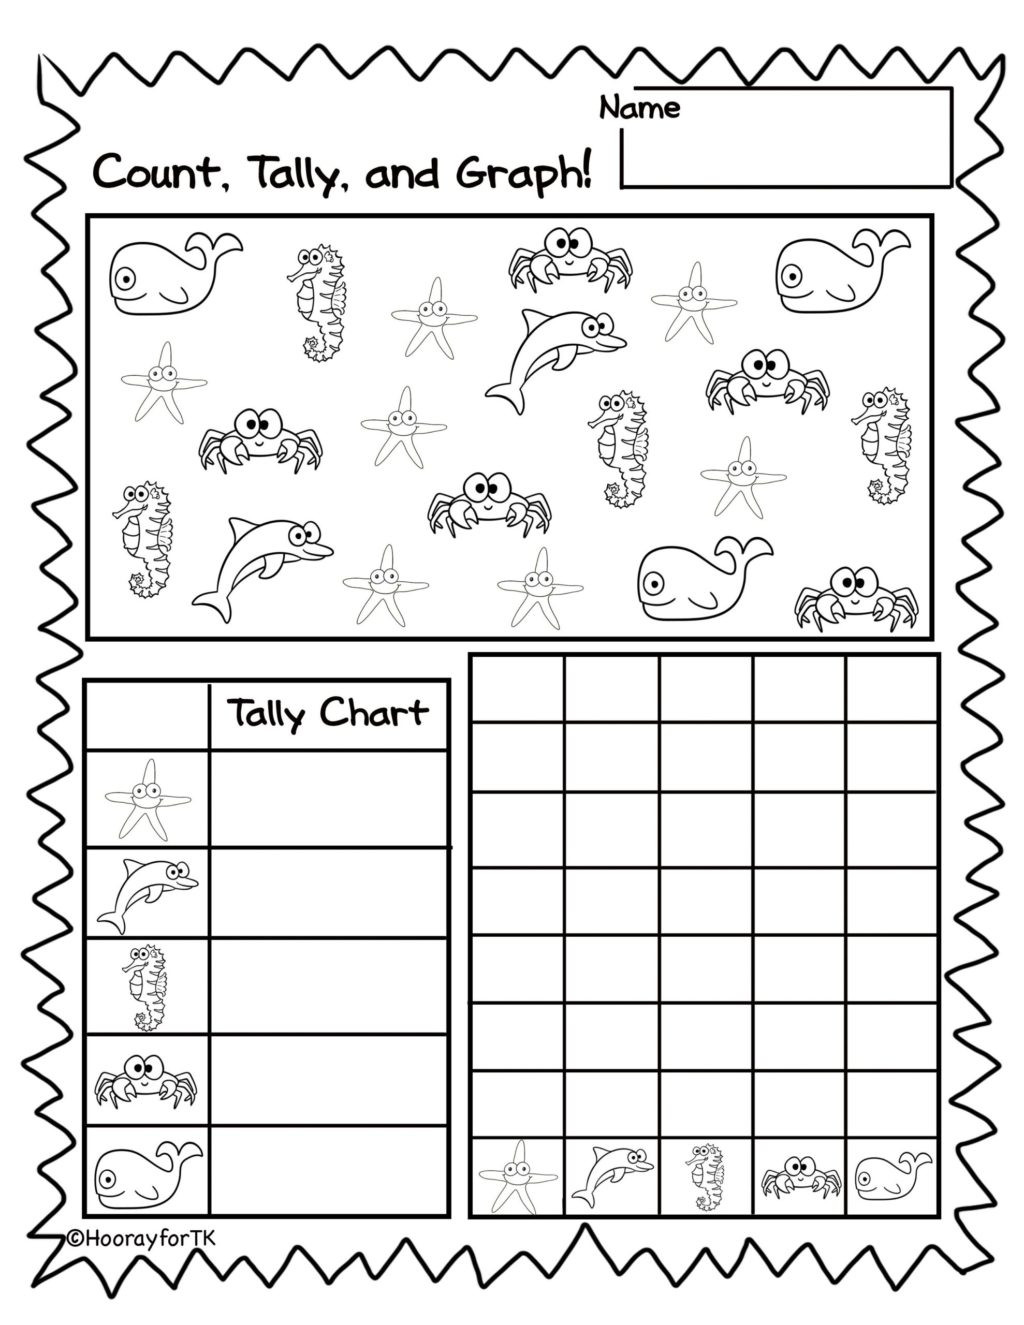 Free Printable Computer Worksheets Math Worksheet Phenomenal Www Kindergarten Printables